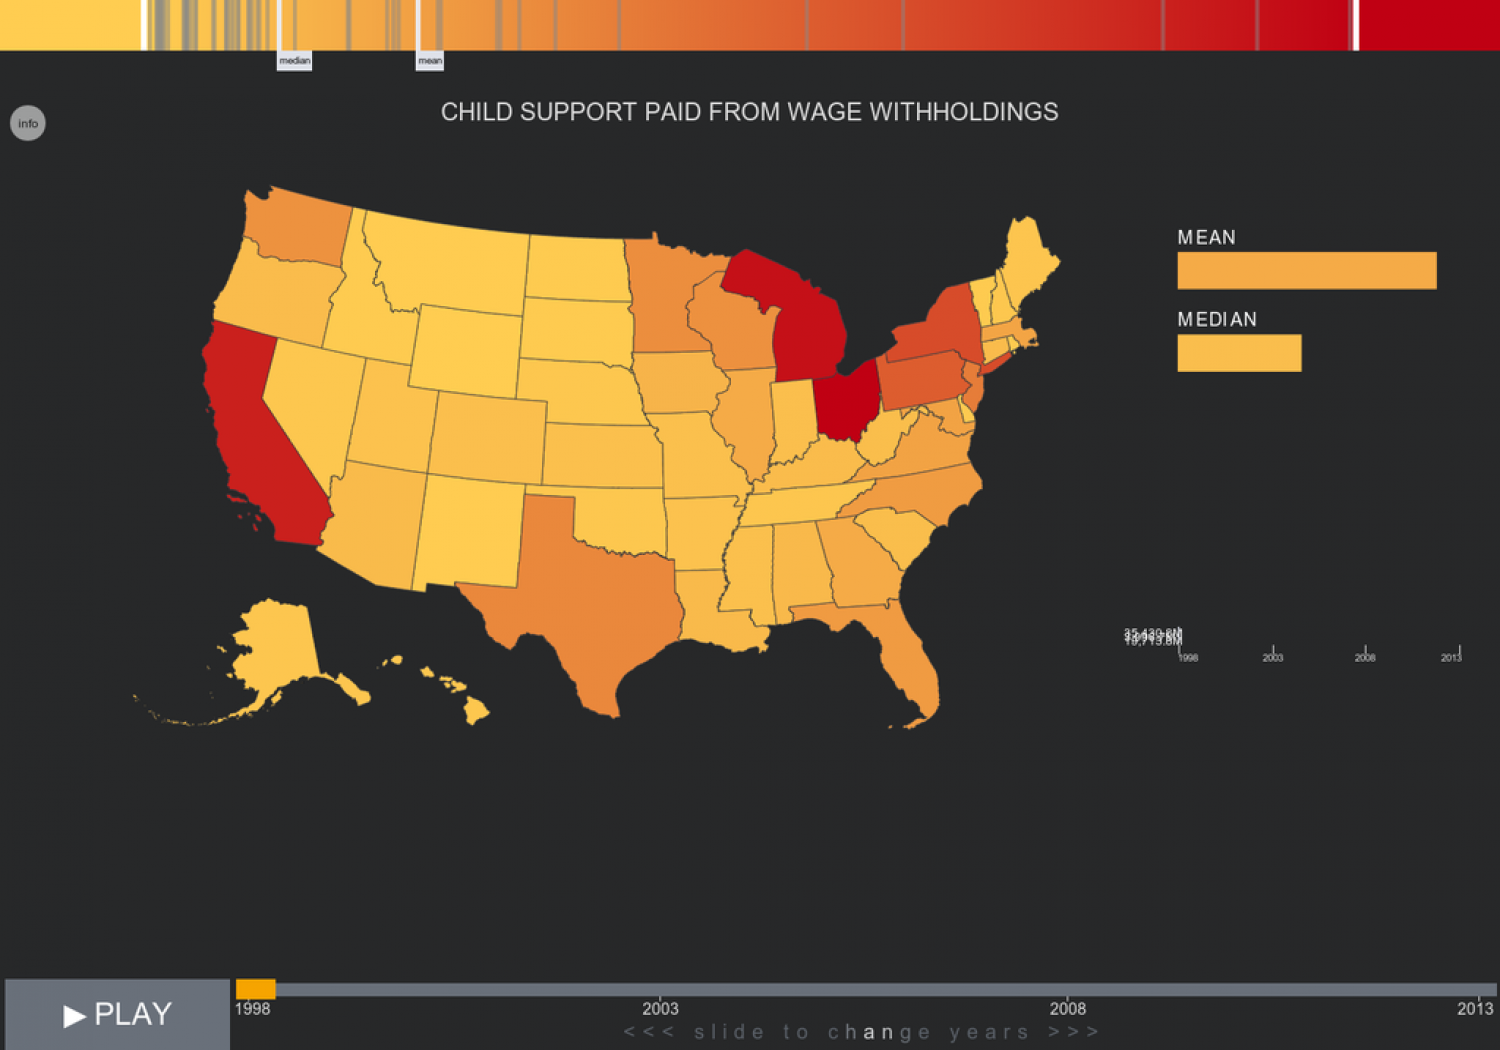 CHILD SUPPORT THROUGH WAGE WITHHOLDING IN THE U.S. Infographic